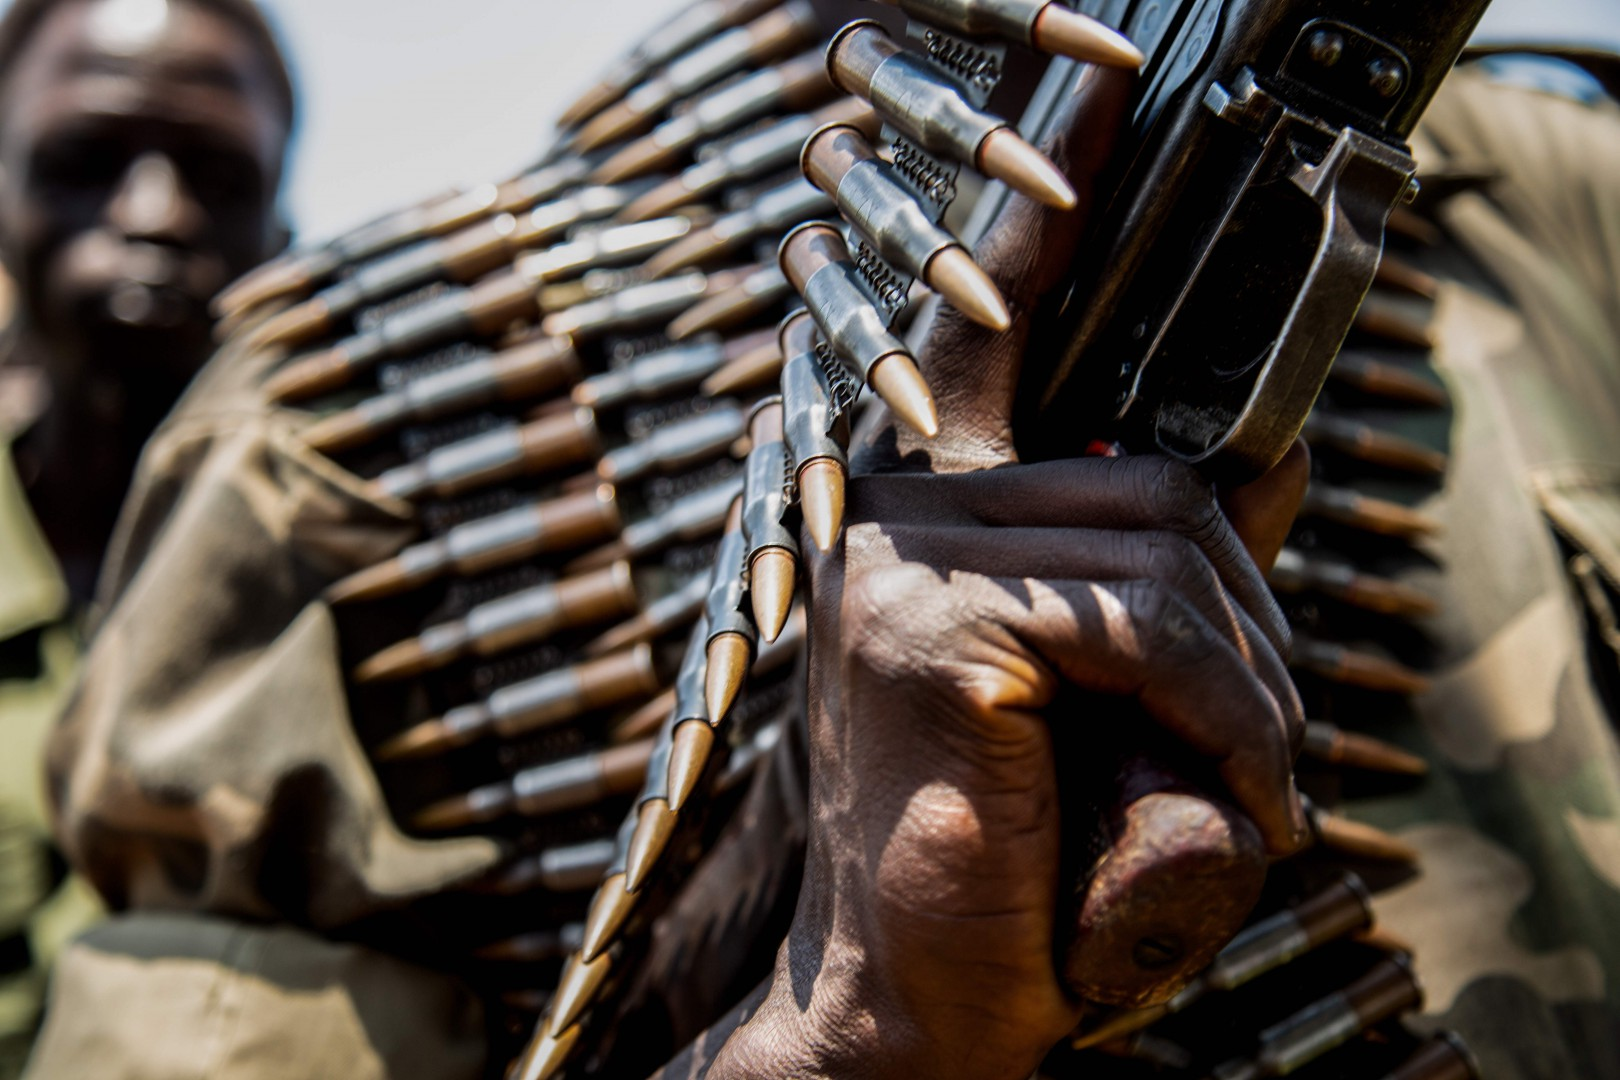 Rebels of the Sudan People's Liberation Movement-in-Opposition (SPLM-IO), a South Sudanese anti-government force, hold ammunitions which they say were confiscated from government forces during fighting as they take part in a military exercise on September 22, 2018, at their base in Panyume, South Sudan, near the border with Uganda. - Despite a peace deal being signed by the President of South Sudan, Salva Kiir, and opposition leader Riek Machar on September 12, conflict in Central Equatoria continues as both warring parties fight for control. (Photo by SUMY SADURNI / AFP)